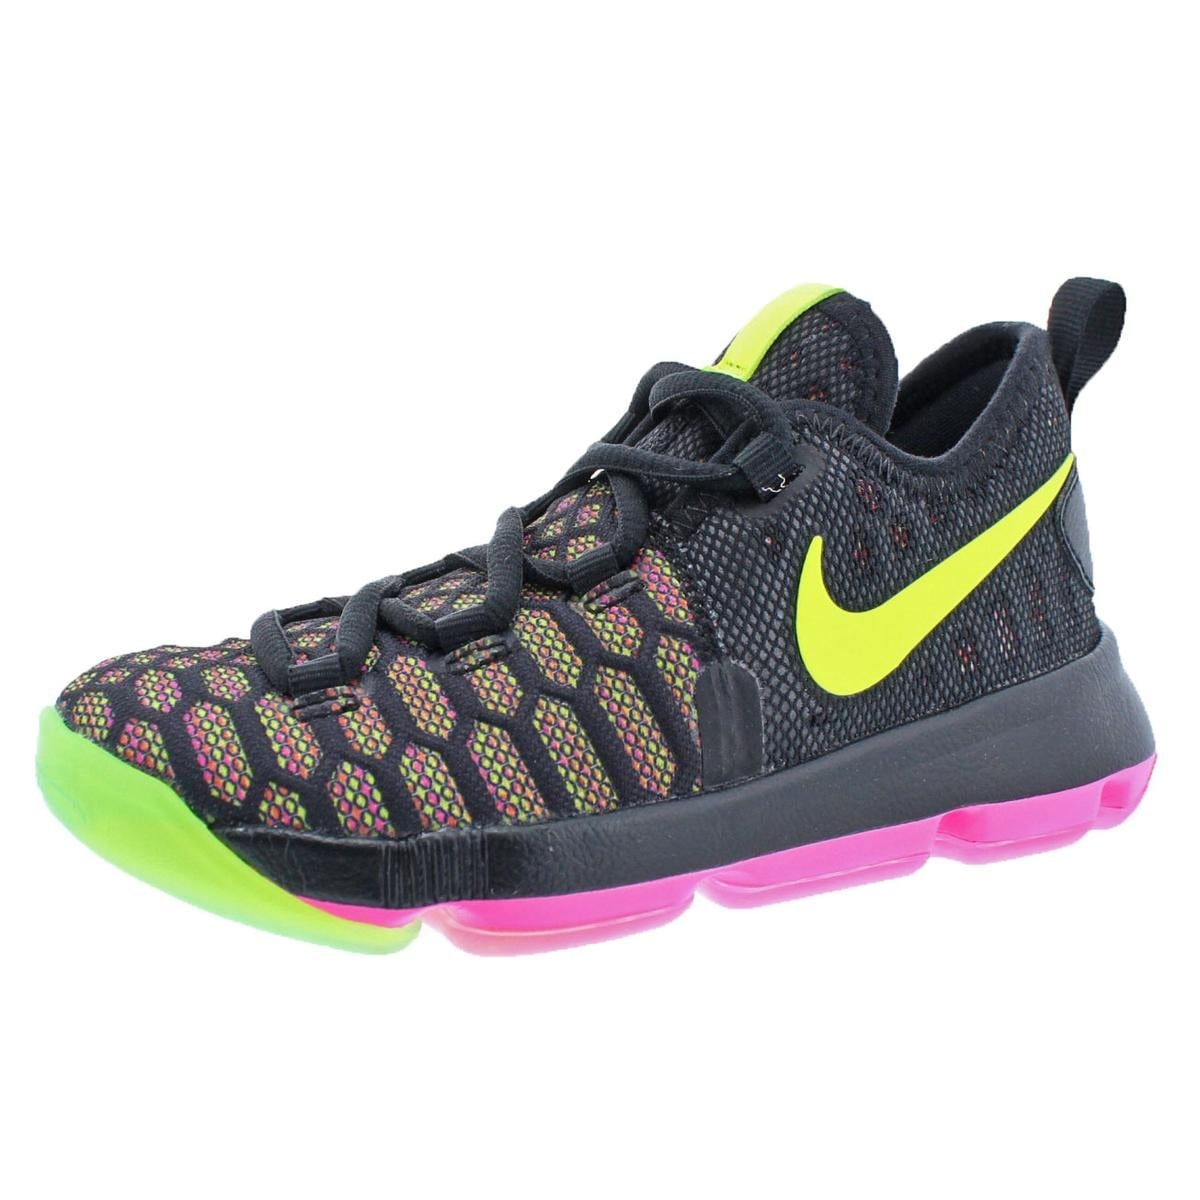 info for e3b47 1f781 Shop Nike Girls KD9 Basketball Shoes Little Kid Lightweight - Free Shipping  On Orders Over  45 - Overstock - 22025341